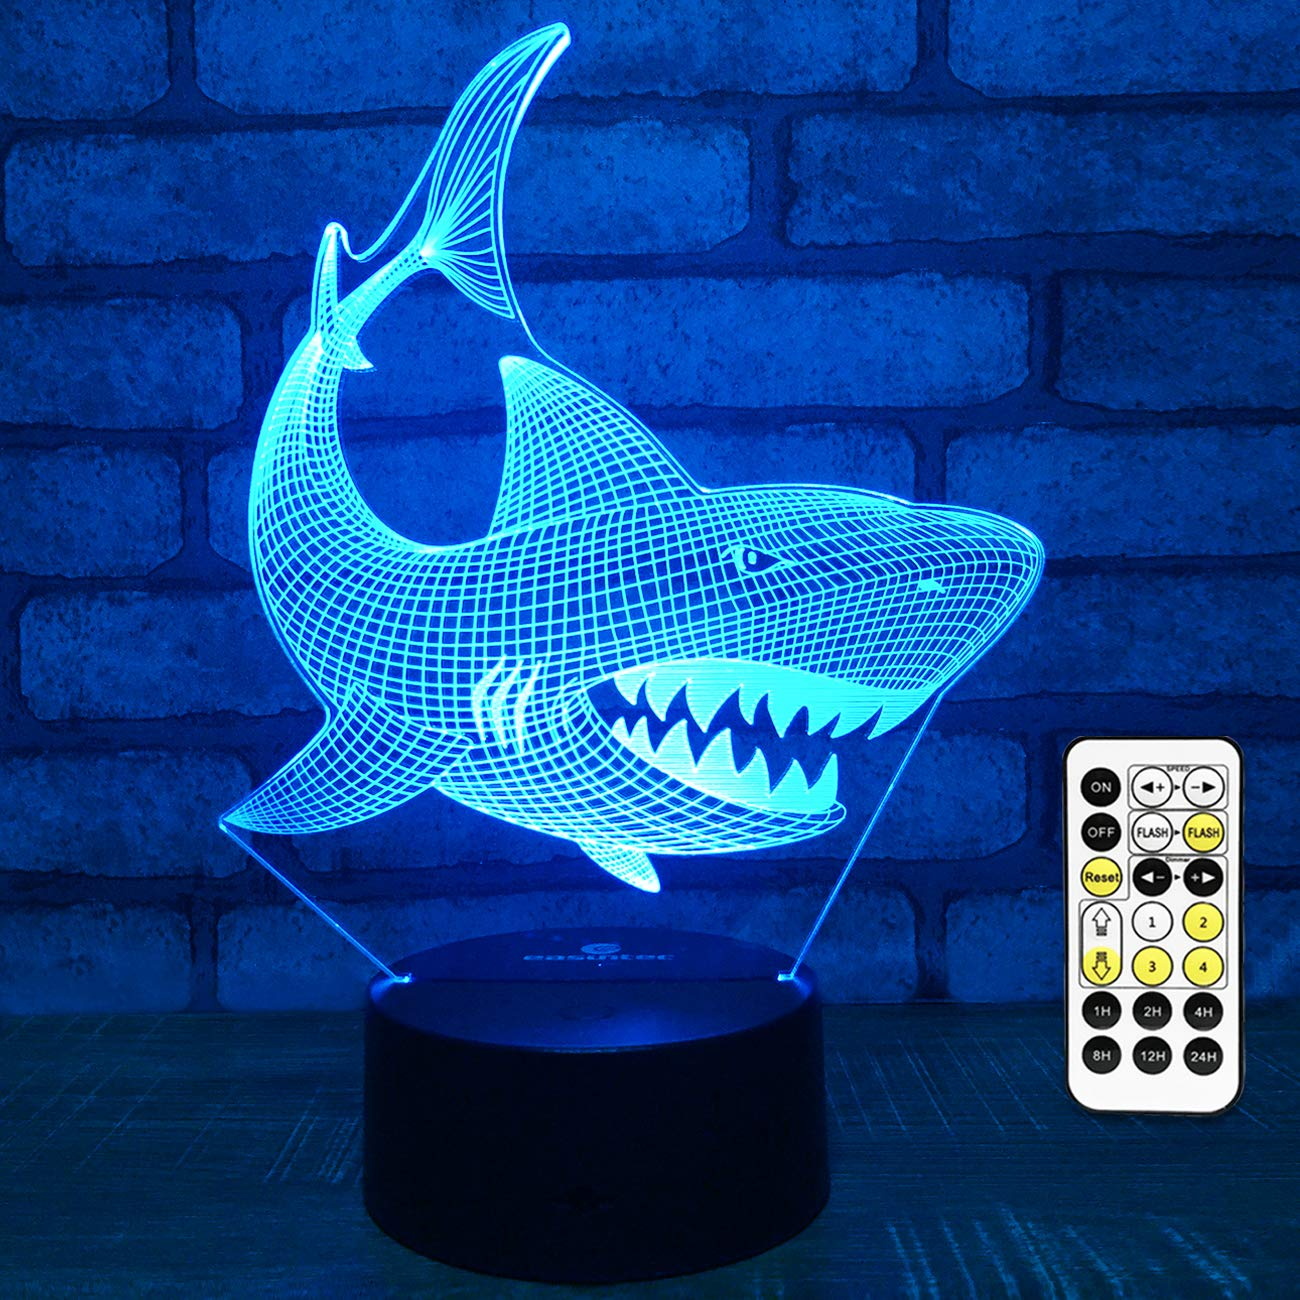 Easuntec Baby Shark Toys,Baby Shark Party Supplies 3D Night Light with Timer Remote Control & Smart Touch 7 Colors Birthday Gifts for Boys Age 2 3 4 5 6 7 8 9 Year Old Boy Gifts (Shark)